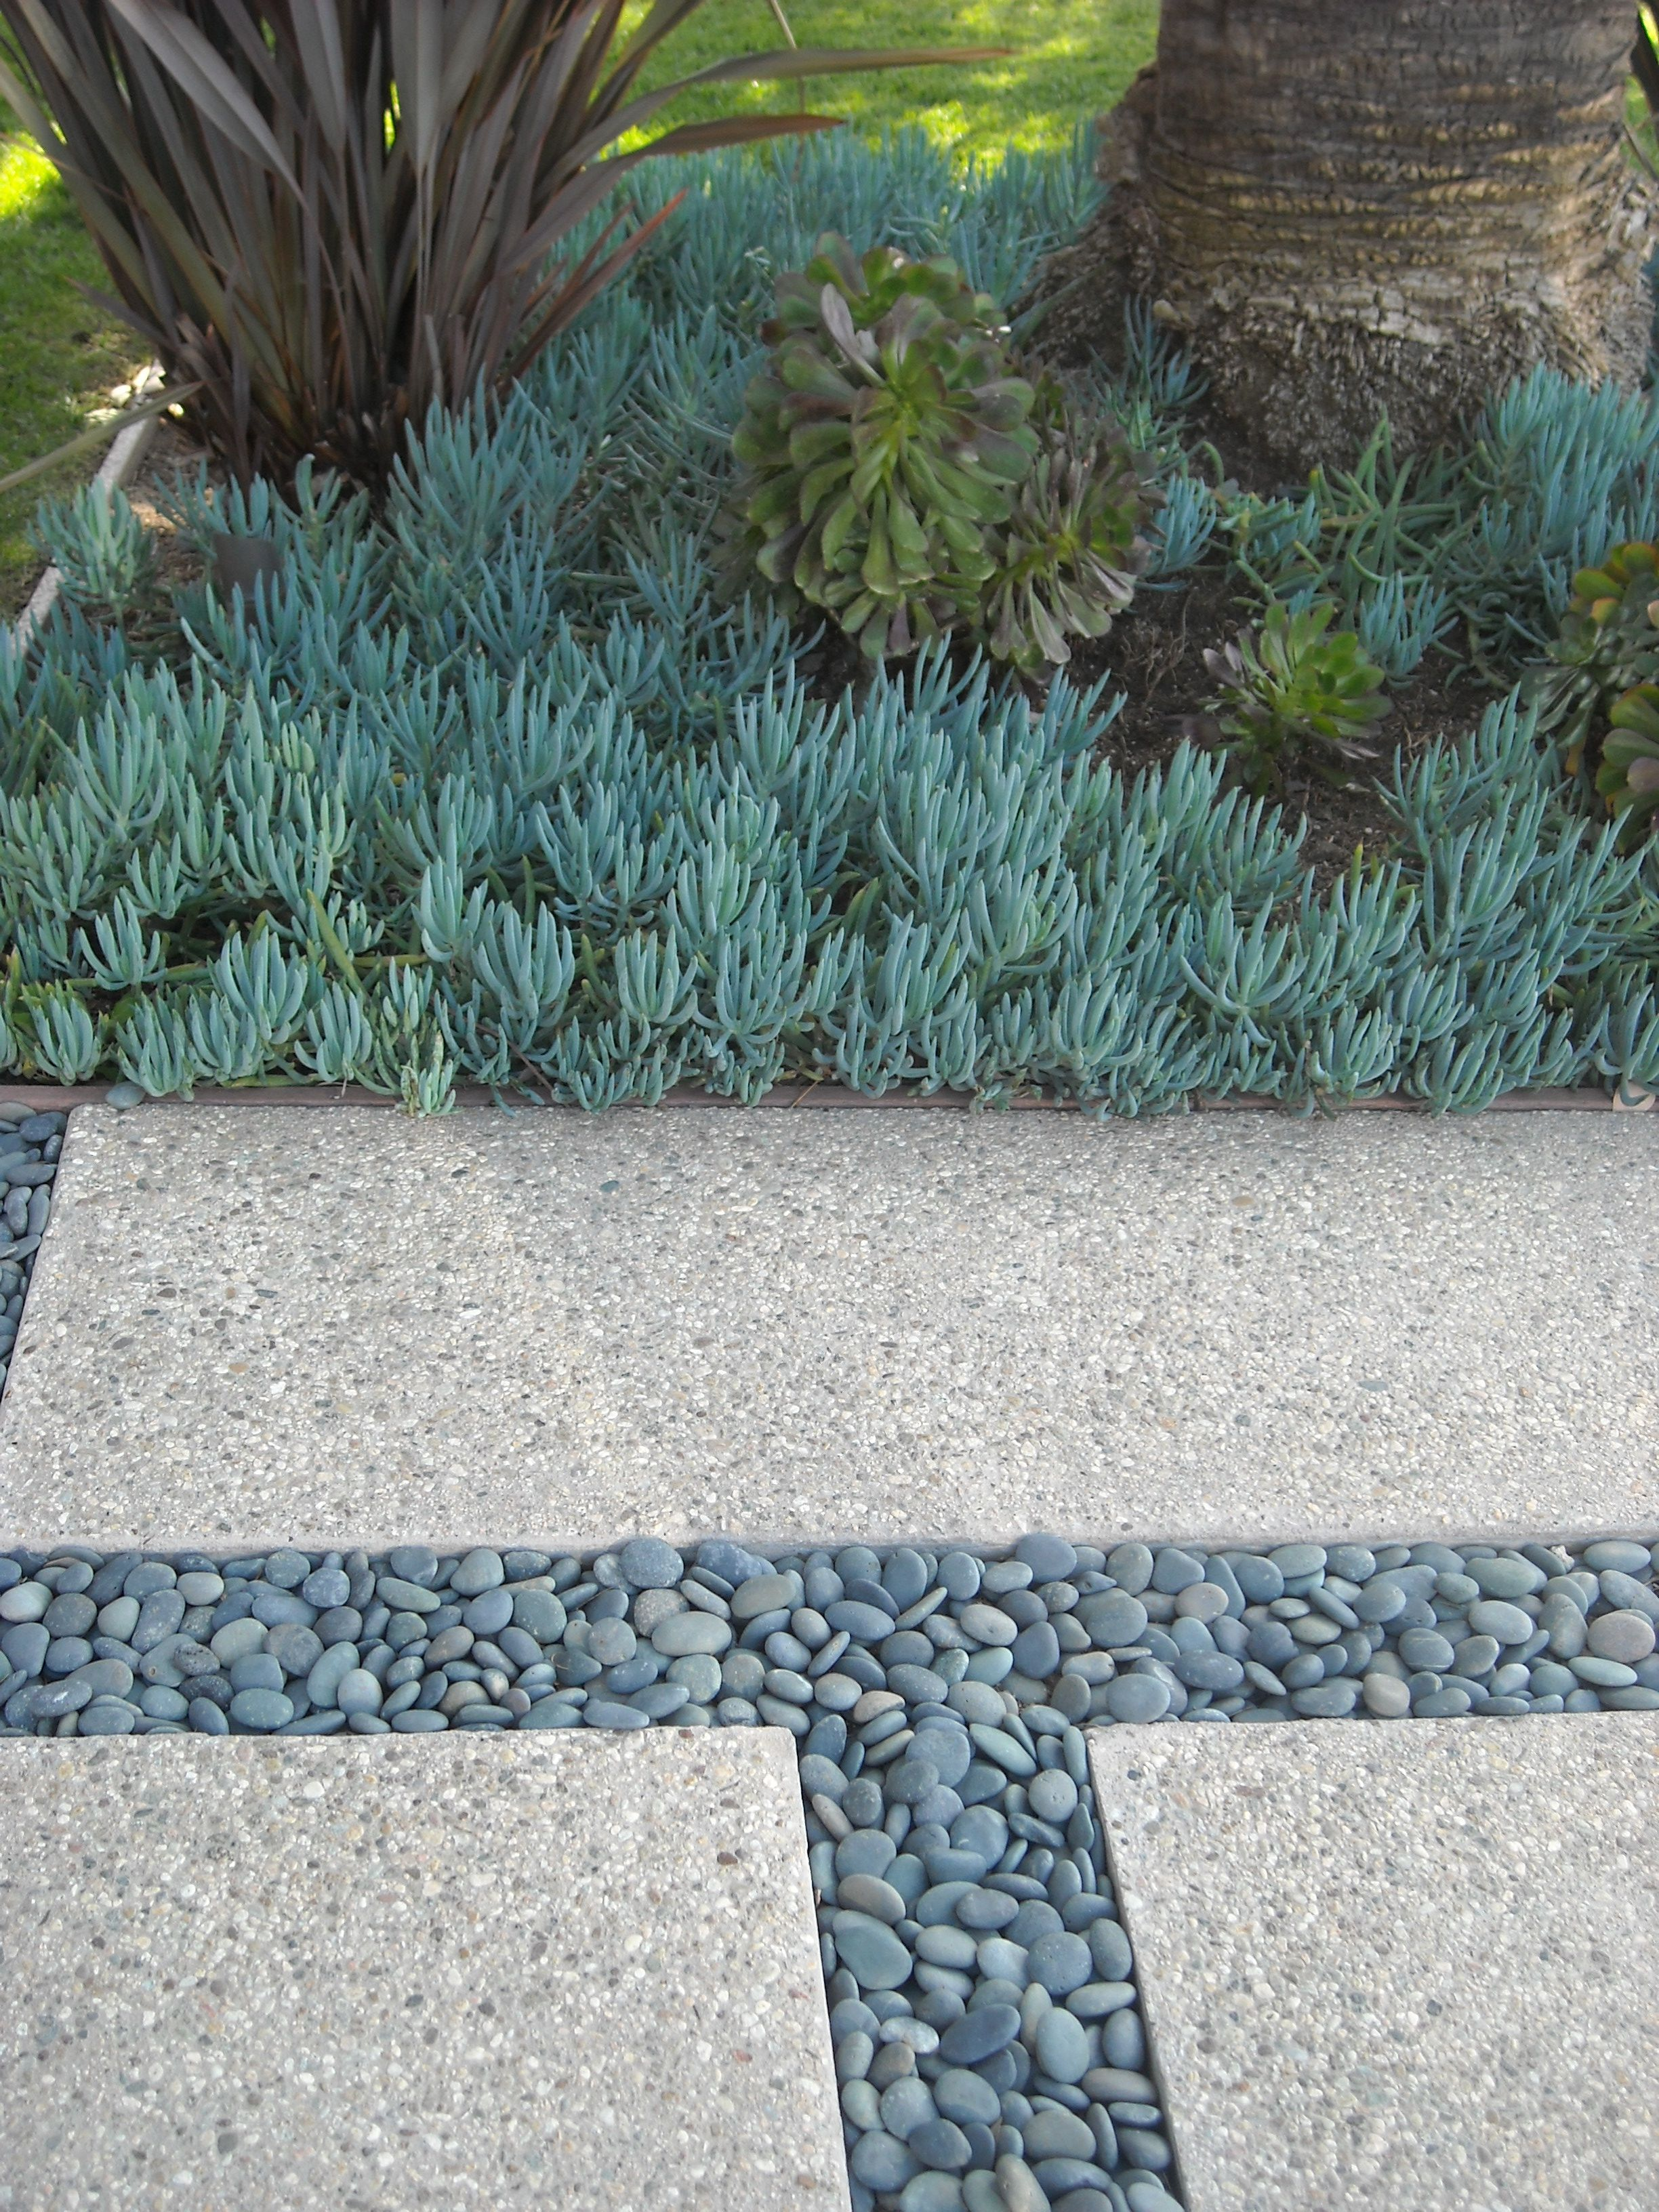 Great Lines With Perfect Contrast From The Round Stones And Texture Of Blue Chalkstick Succulent